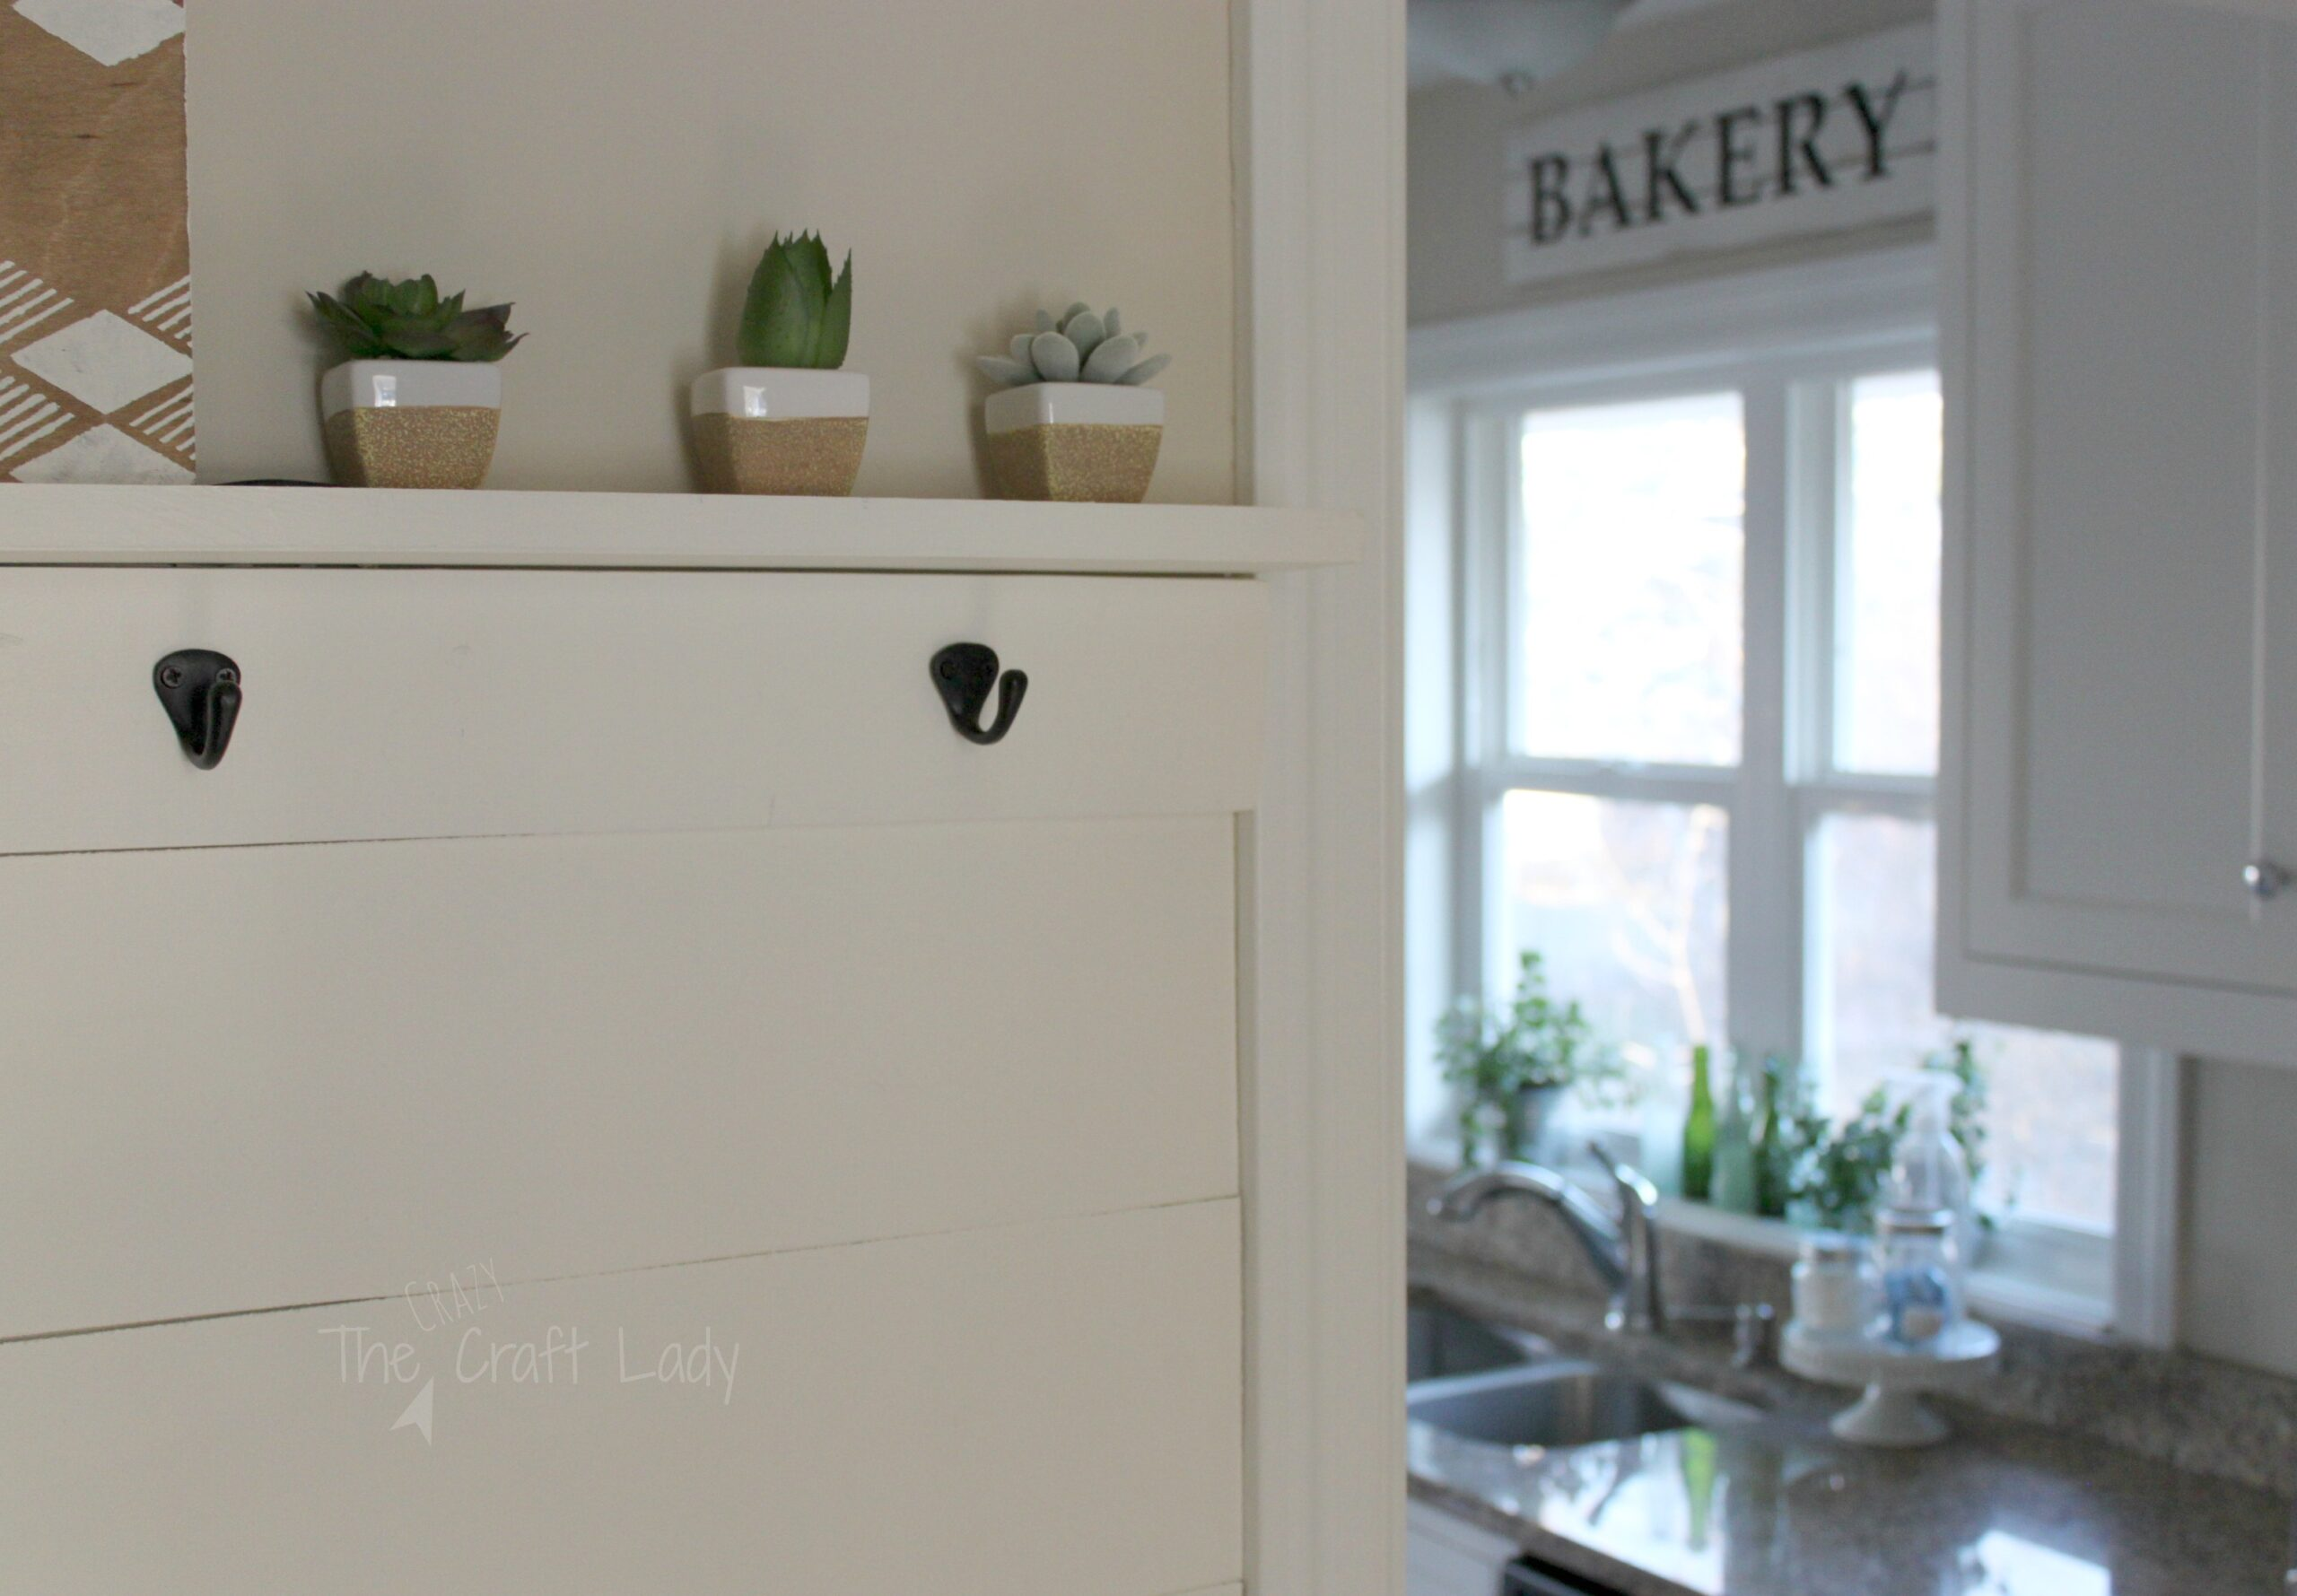 DIY Farmhouse Style Bakery Kitchen Sign   This Is Such An EASY DIY Decor  Project.